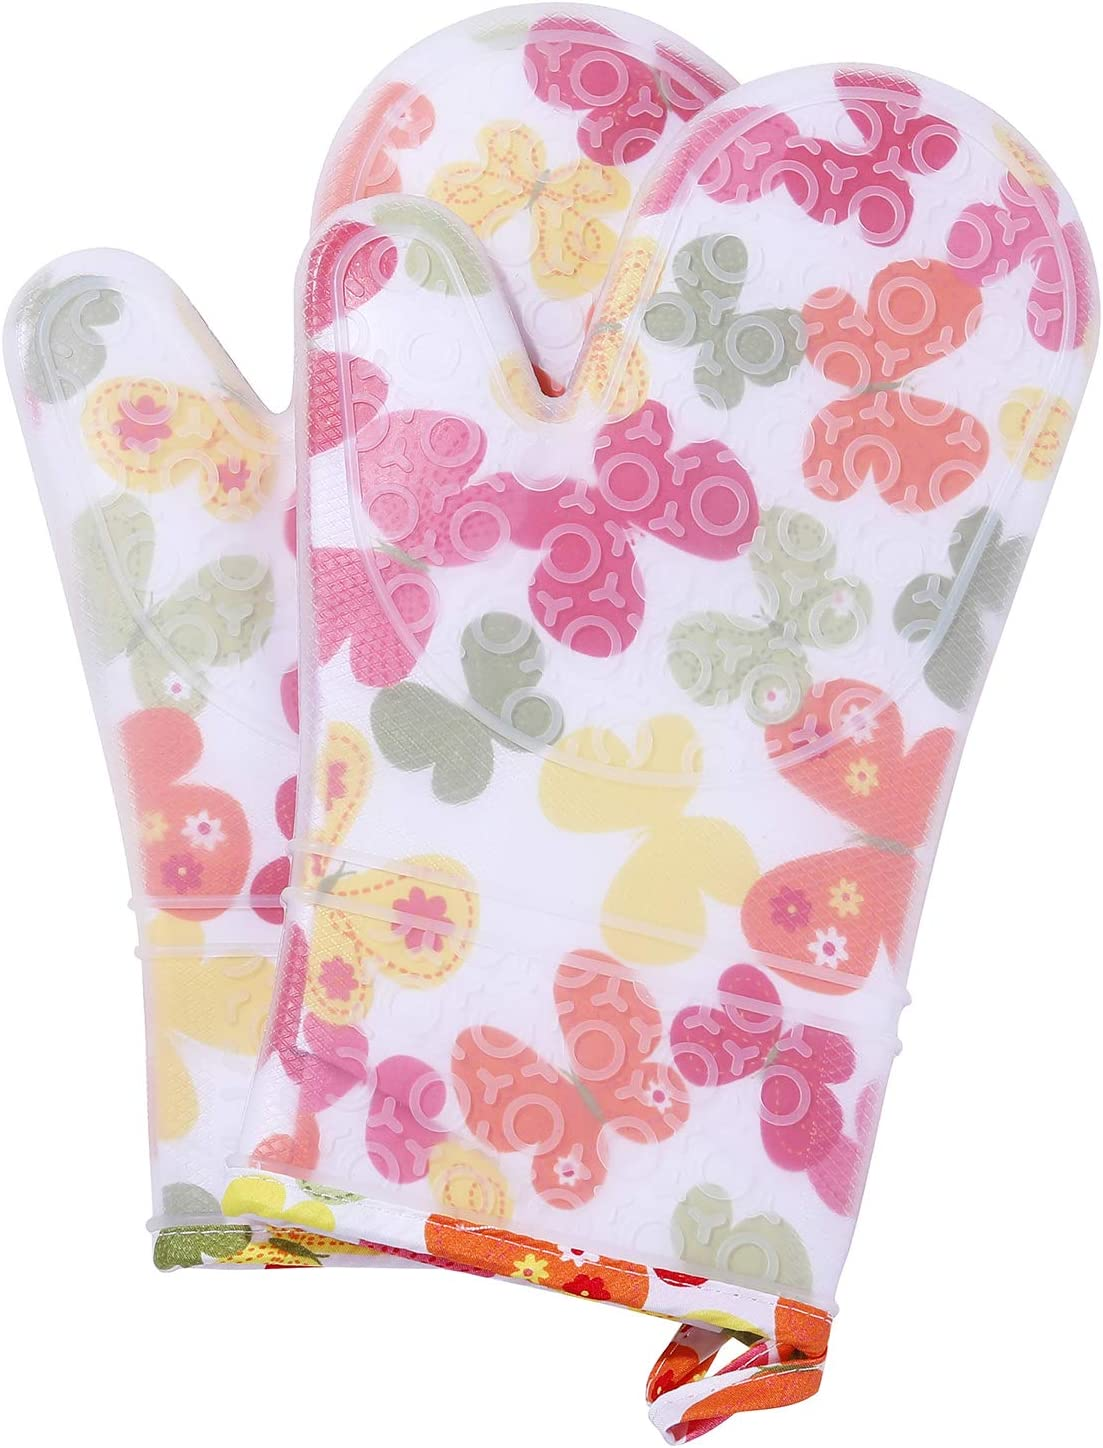 misaya Silicone Oven Mitts Printing Design Non-Slip Heat Resistant Kitchen Pot Holders with Grill Basting Brush, Butterfly